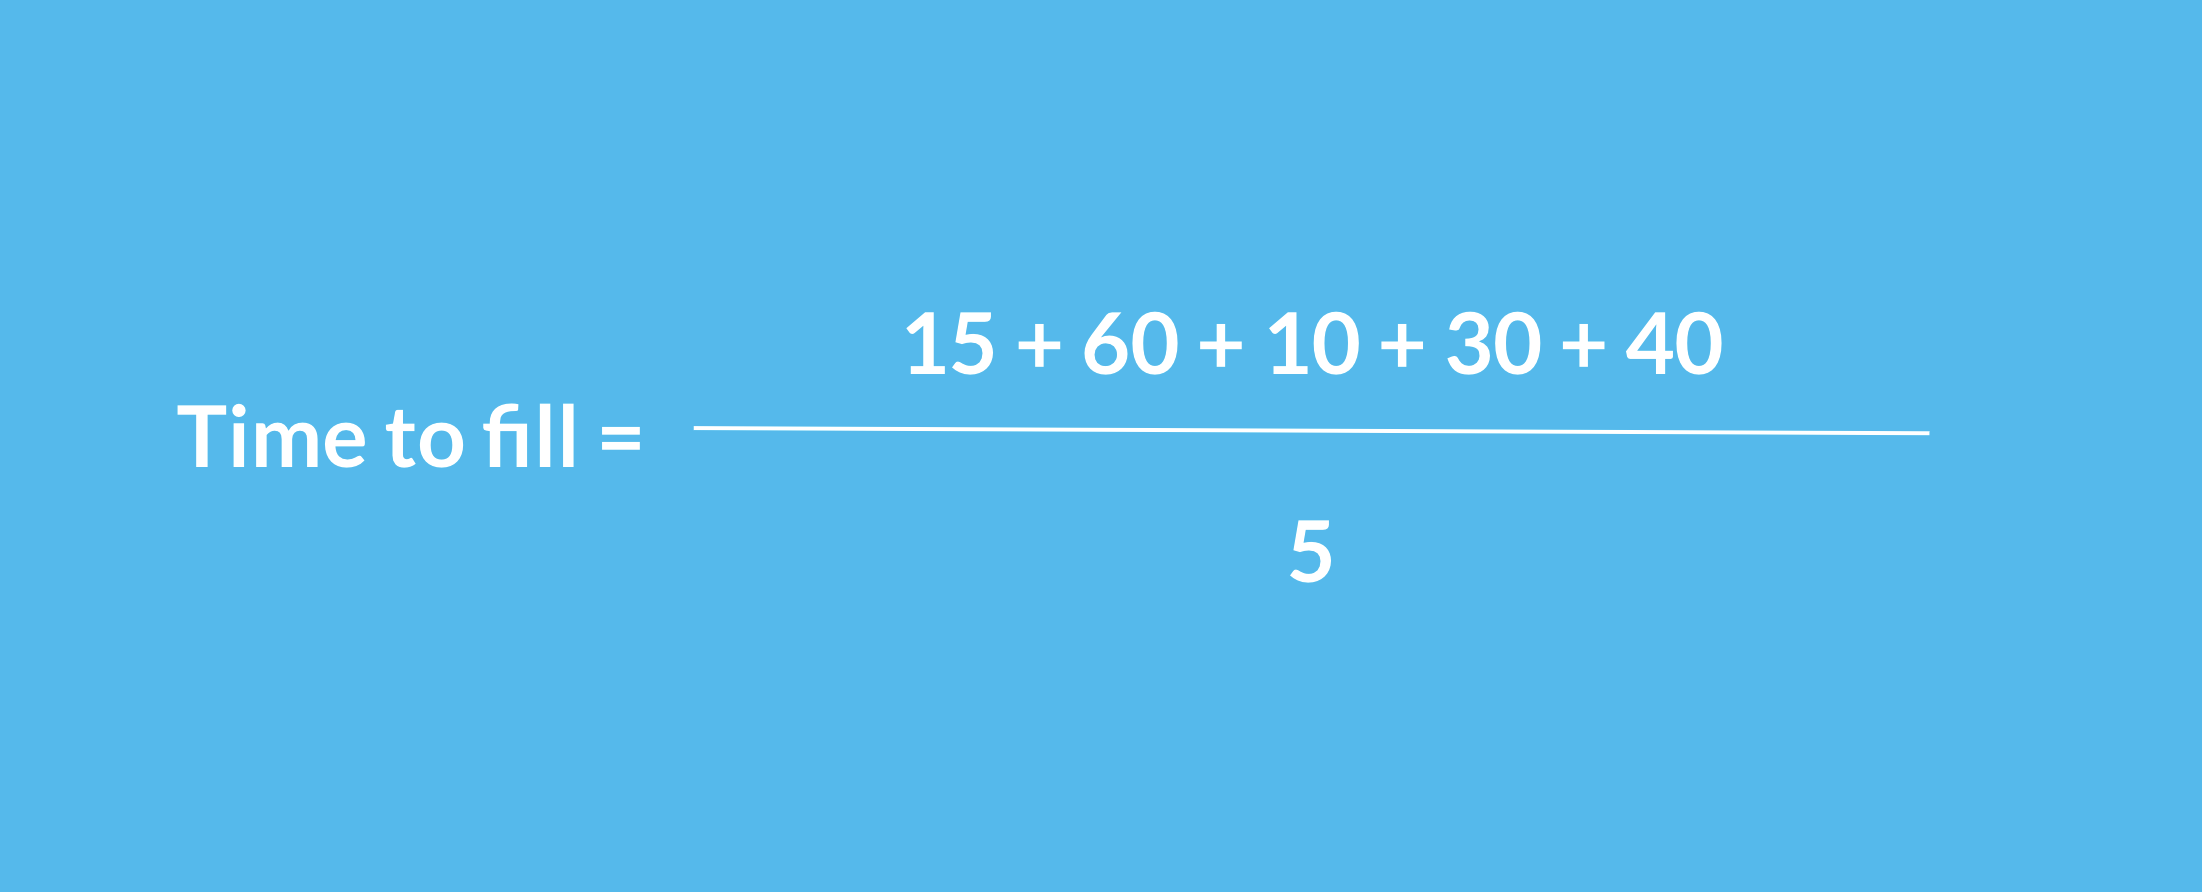 Average TIme to Fill Calculation Example